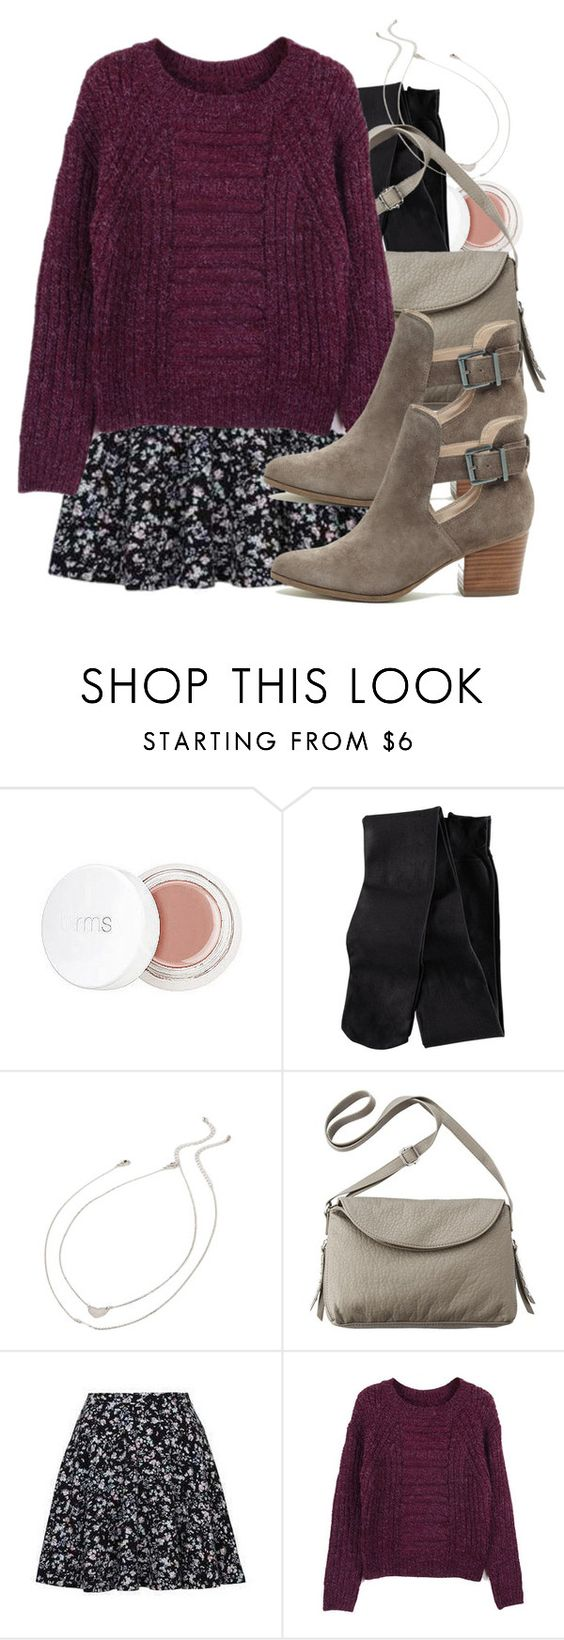 """Hayley inspired fall school outfit"" by tvdstyleblog ❤ liked on Polyvore featuring rms beauty, H&M, Forever 21, Mossimo, Retrò and Sole Society"